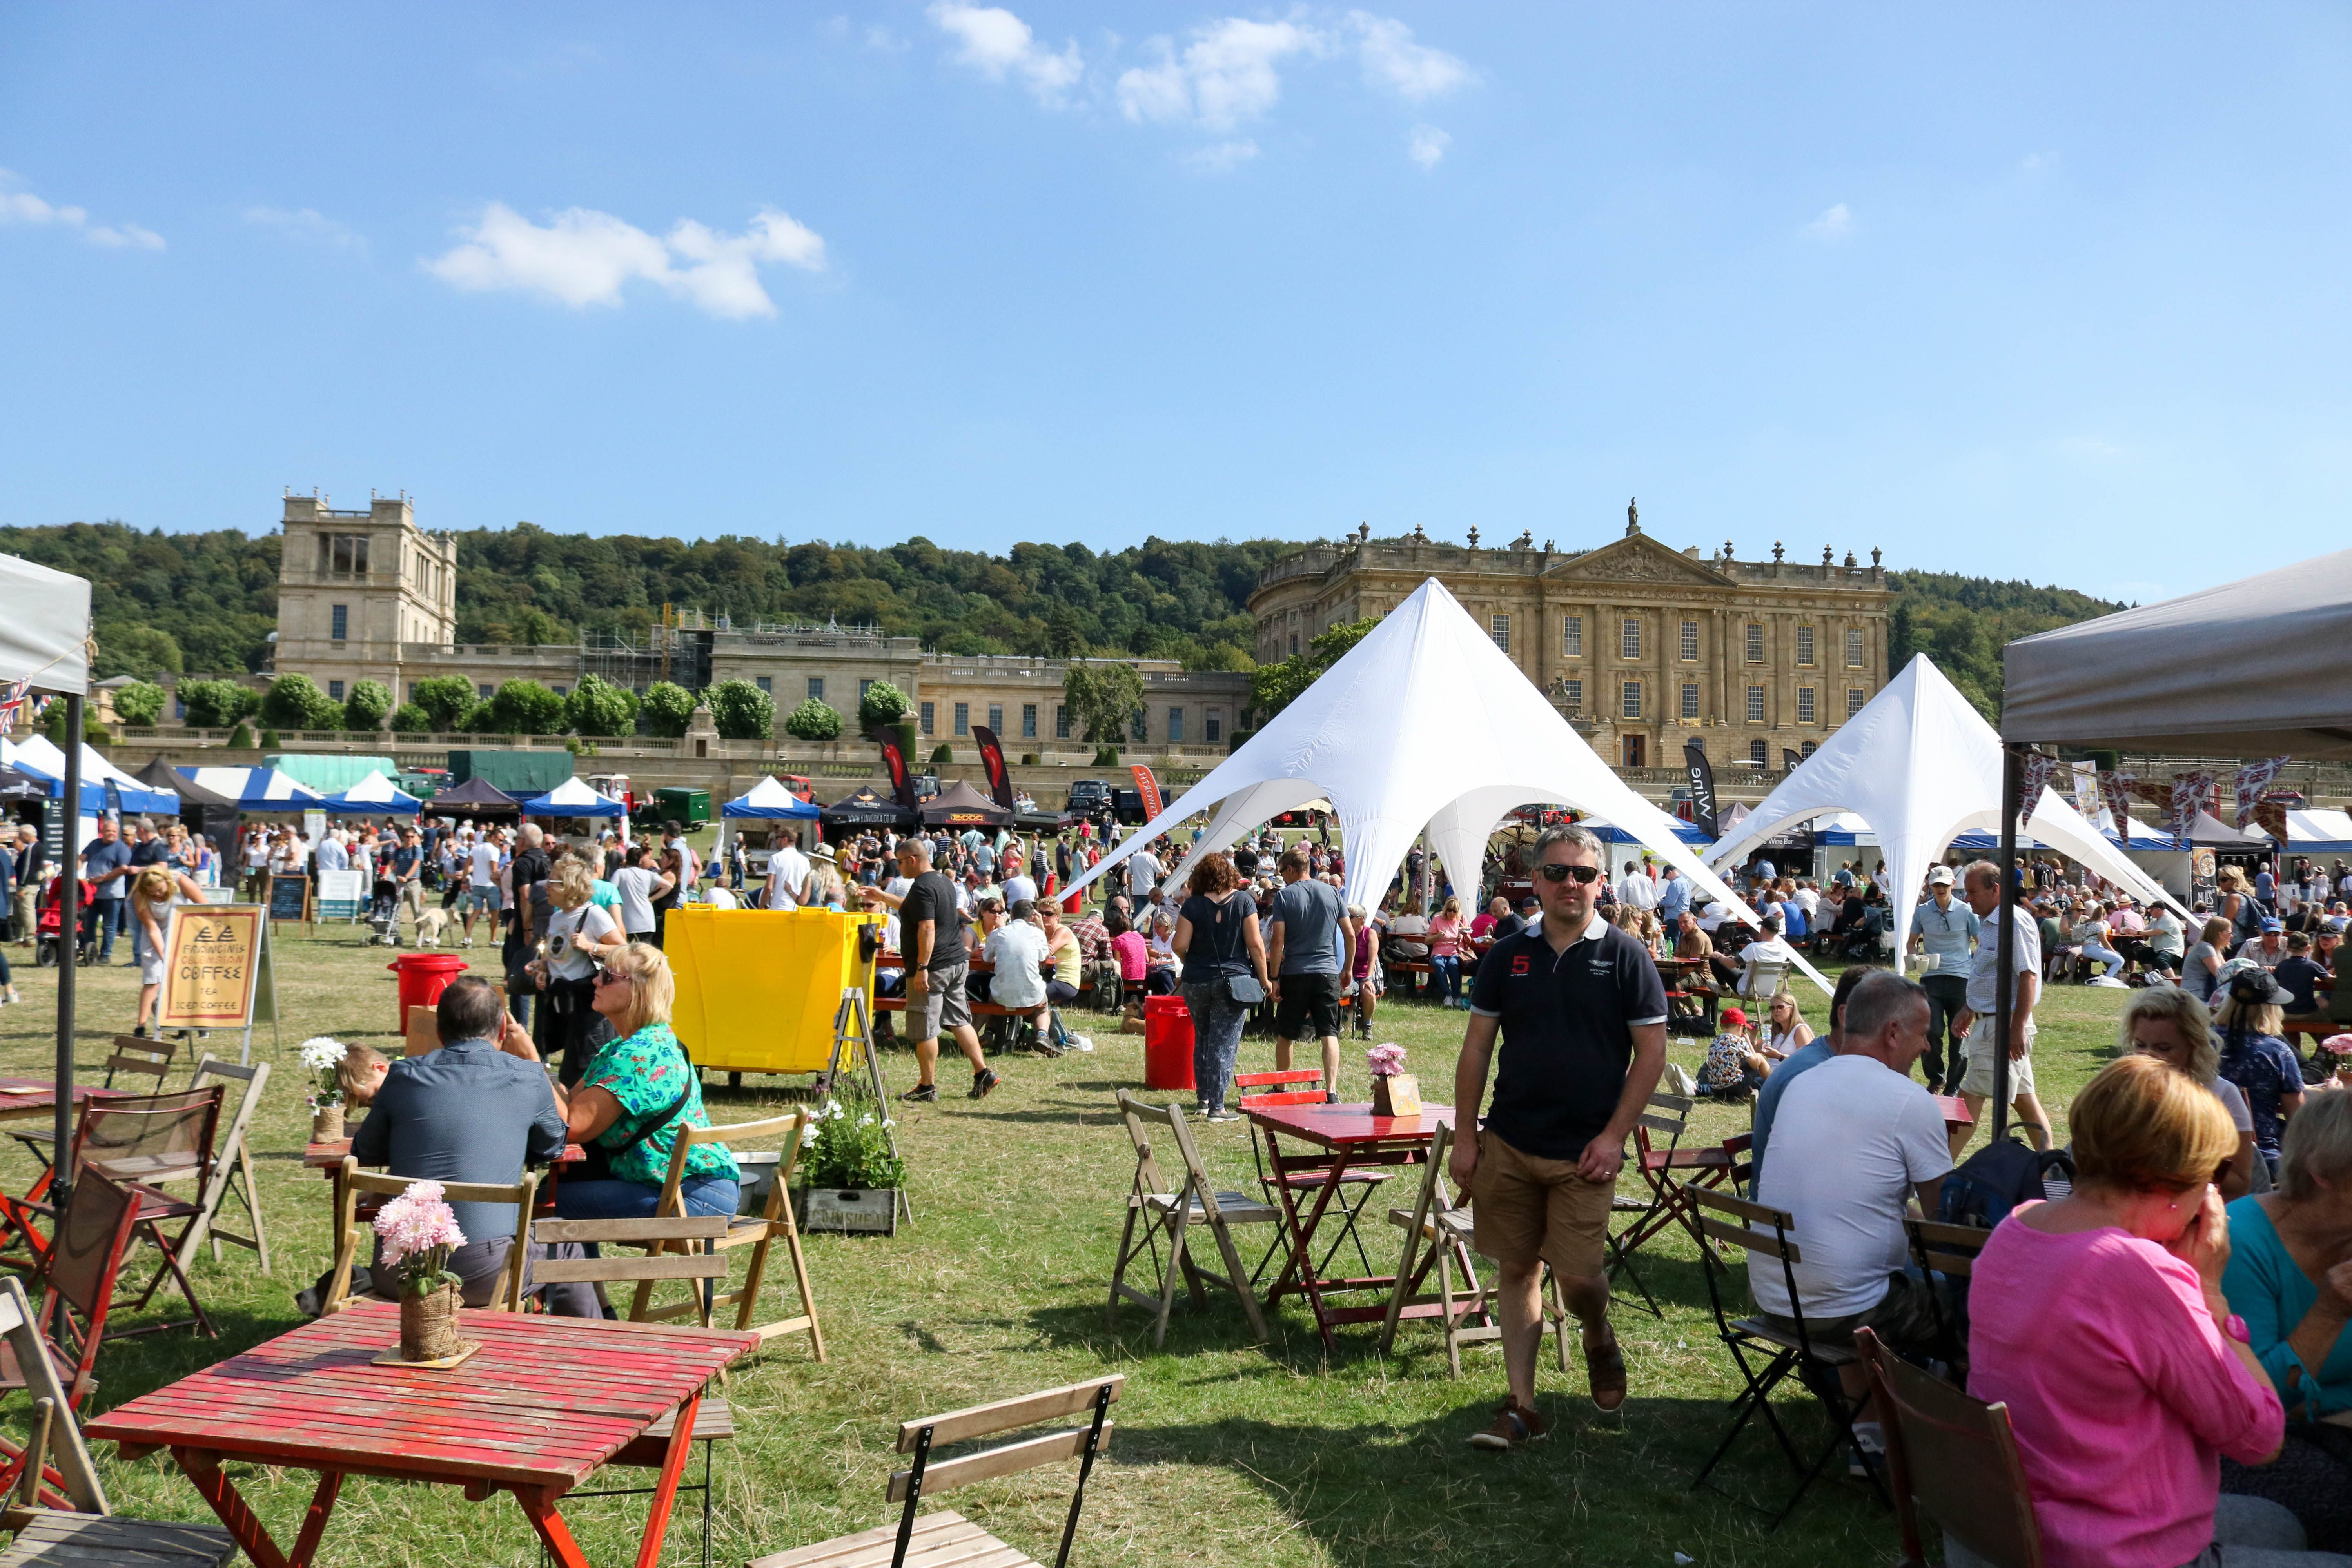 Trade Stands Chatsworth Country Fair : In pictures chatsworth country fair thousands flock